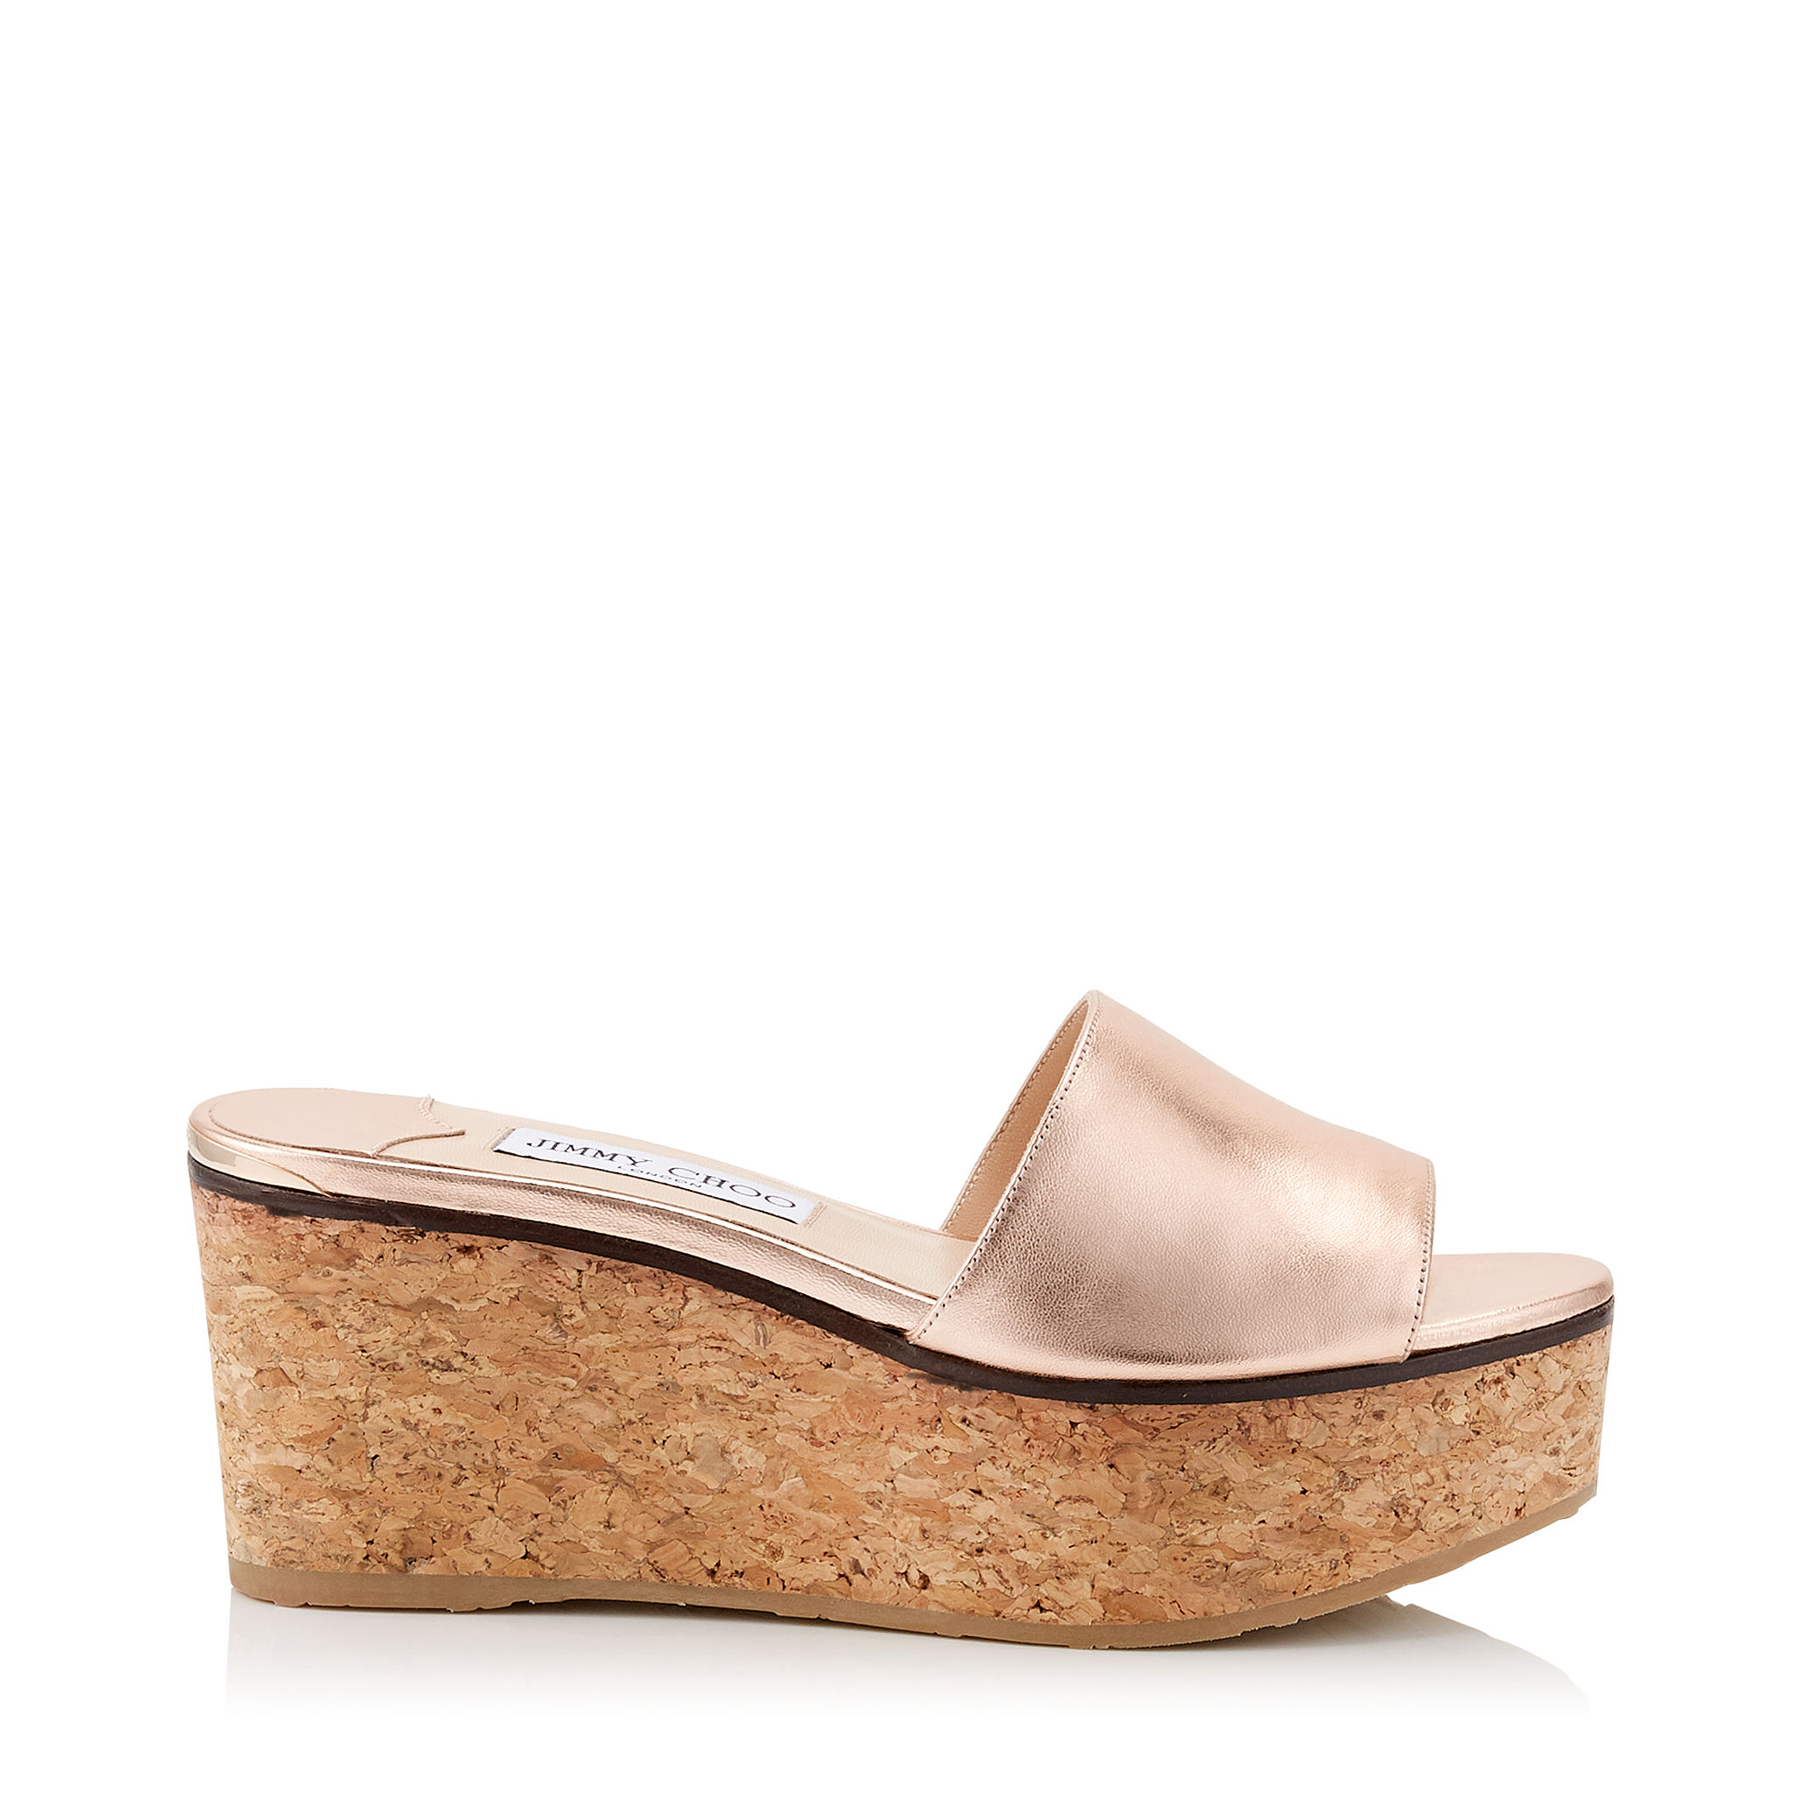 DEEDEE 80 Tea Rose Metallic Nappa Leather Sandal Wedges by Jimmy Choo